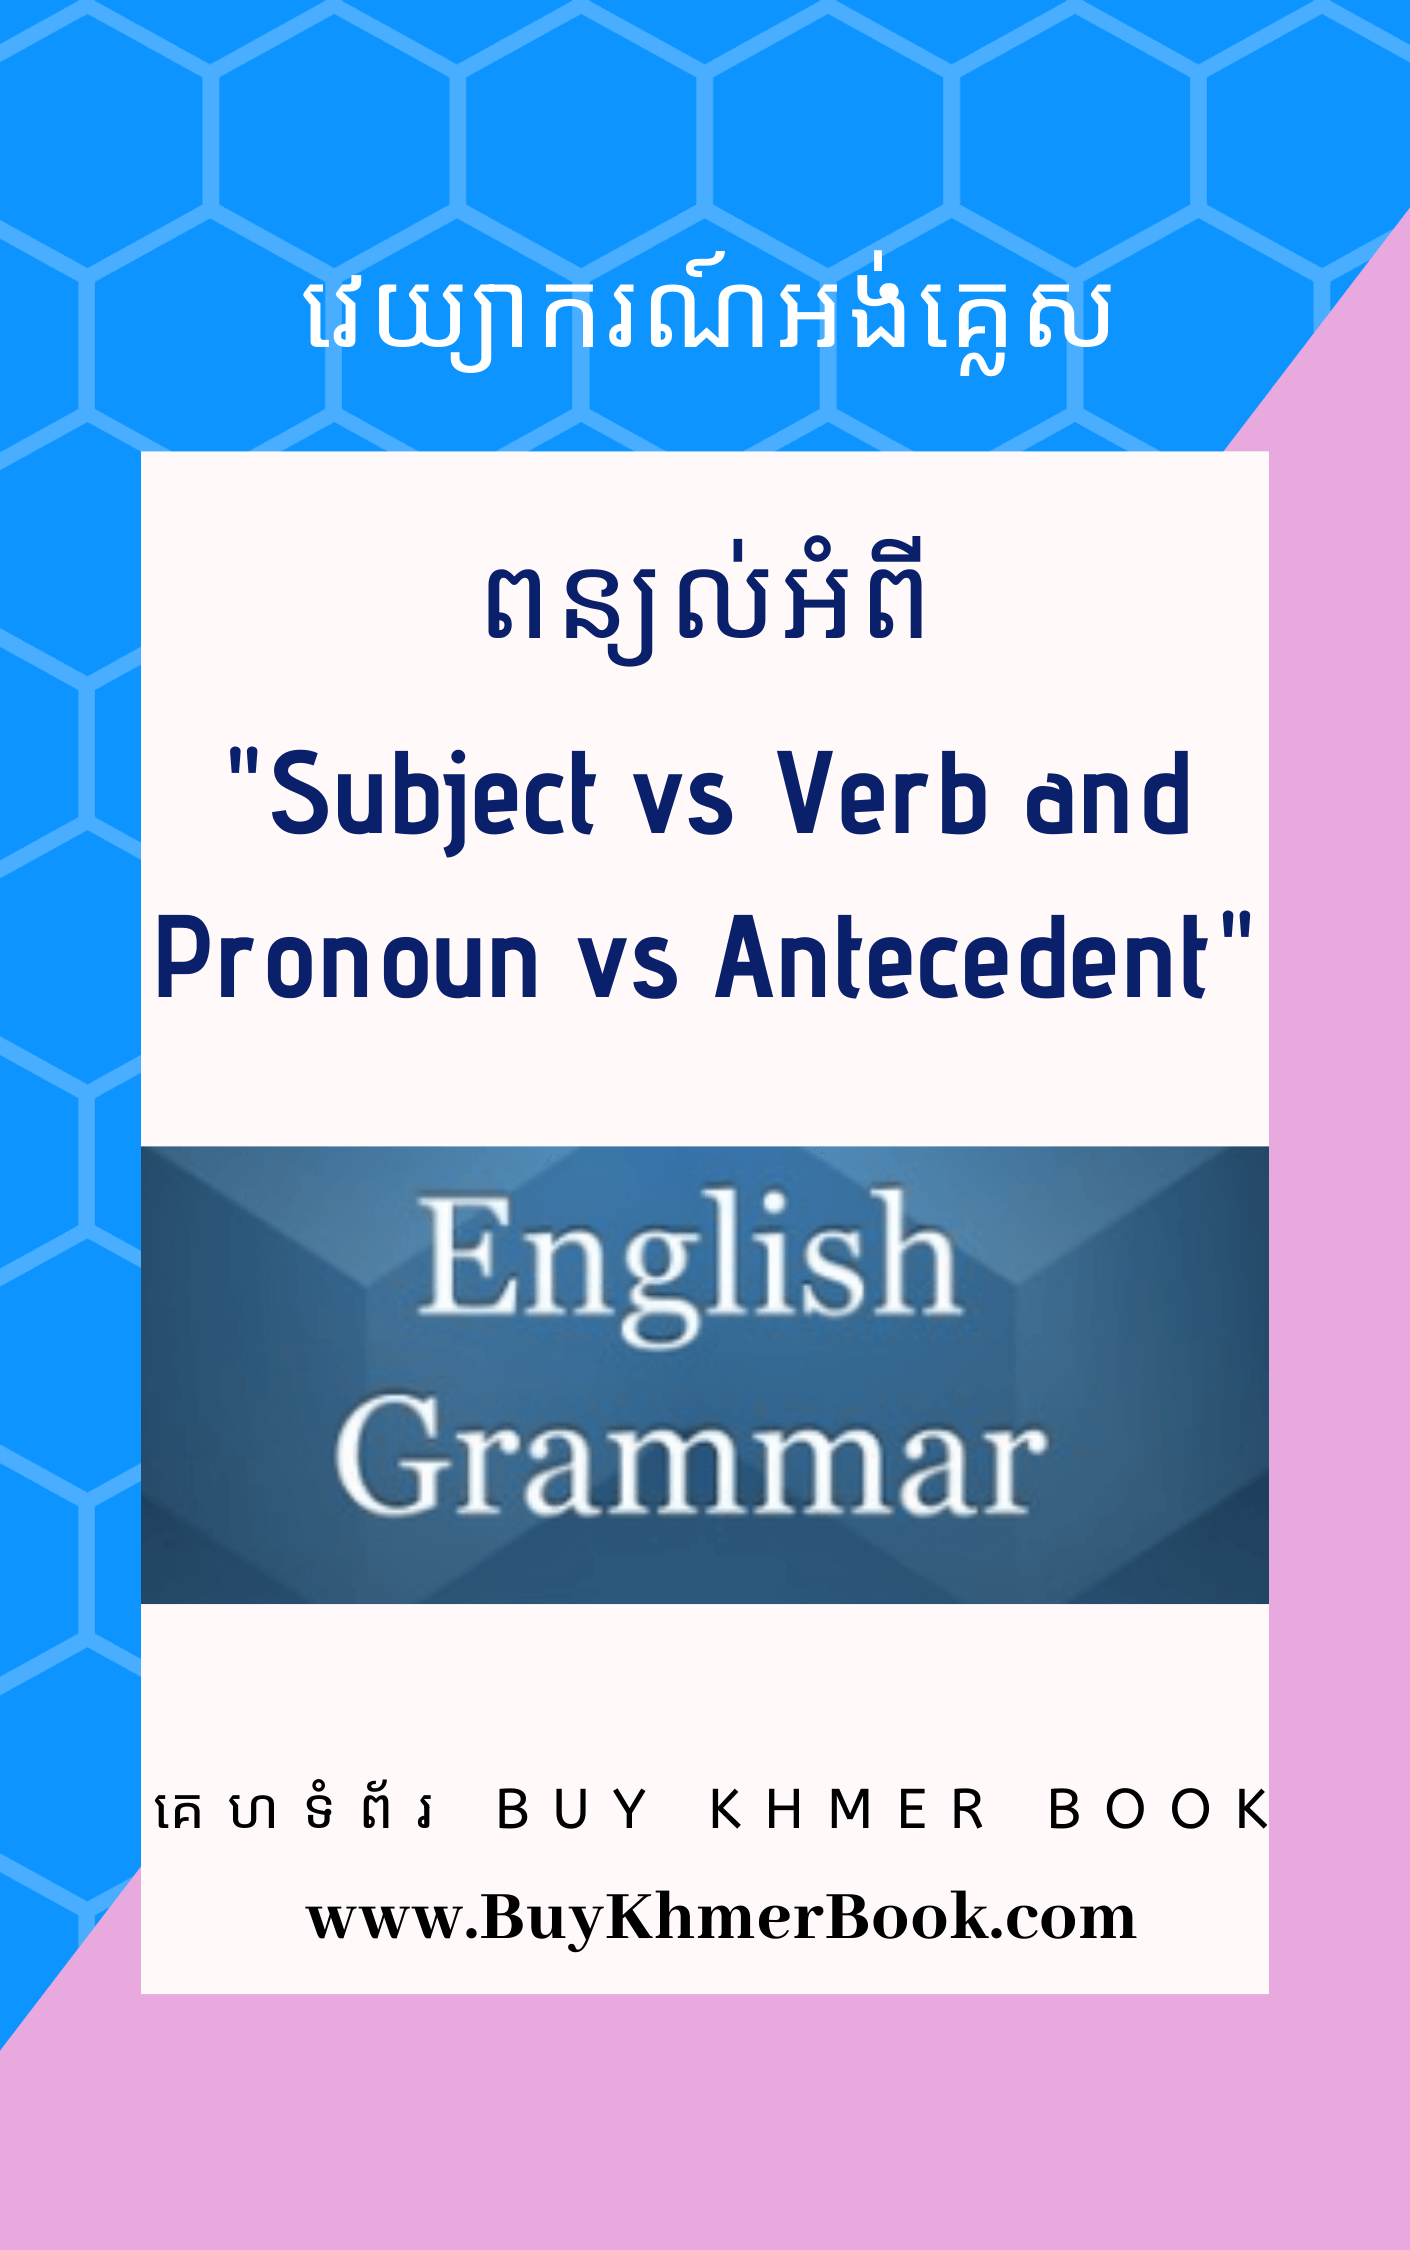 Agreement Subject Vs Verb And Pronoun Vs Antecedent